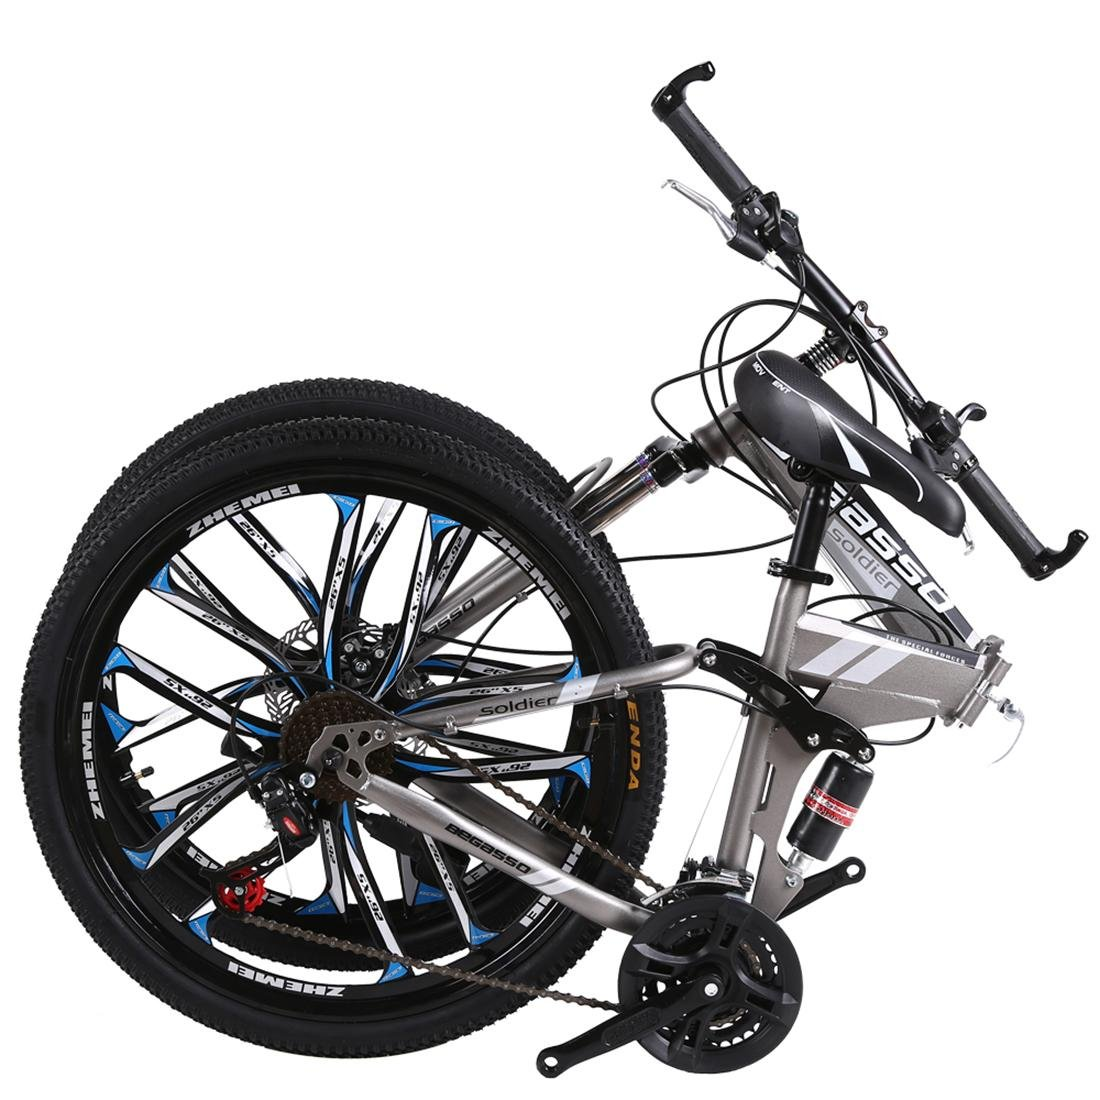 876ad5d50f2 26 Inch Folding Mountain Bike 21 Speed Double Damping 6/10 Knife Wheel And 3  Knife Wheel Bicycle Double Disc Brakes Mountain Bike , 26 inch-3 knife wheel:  ...